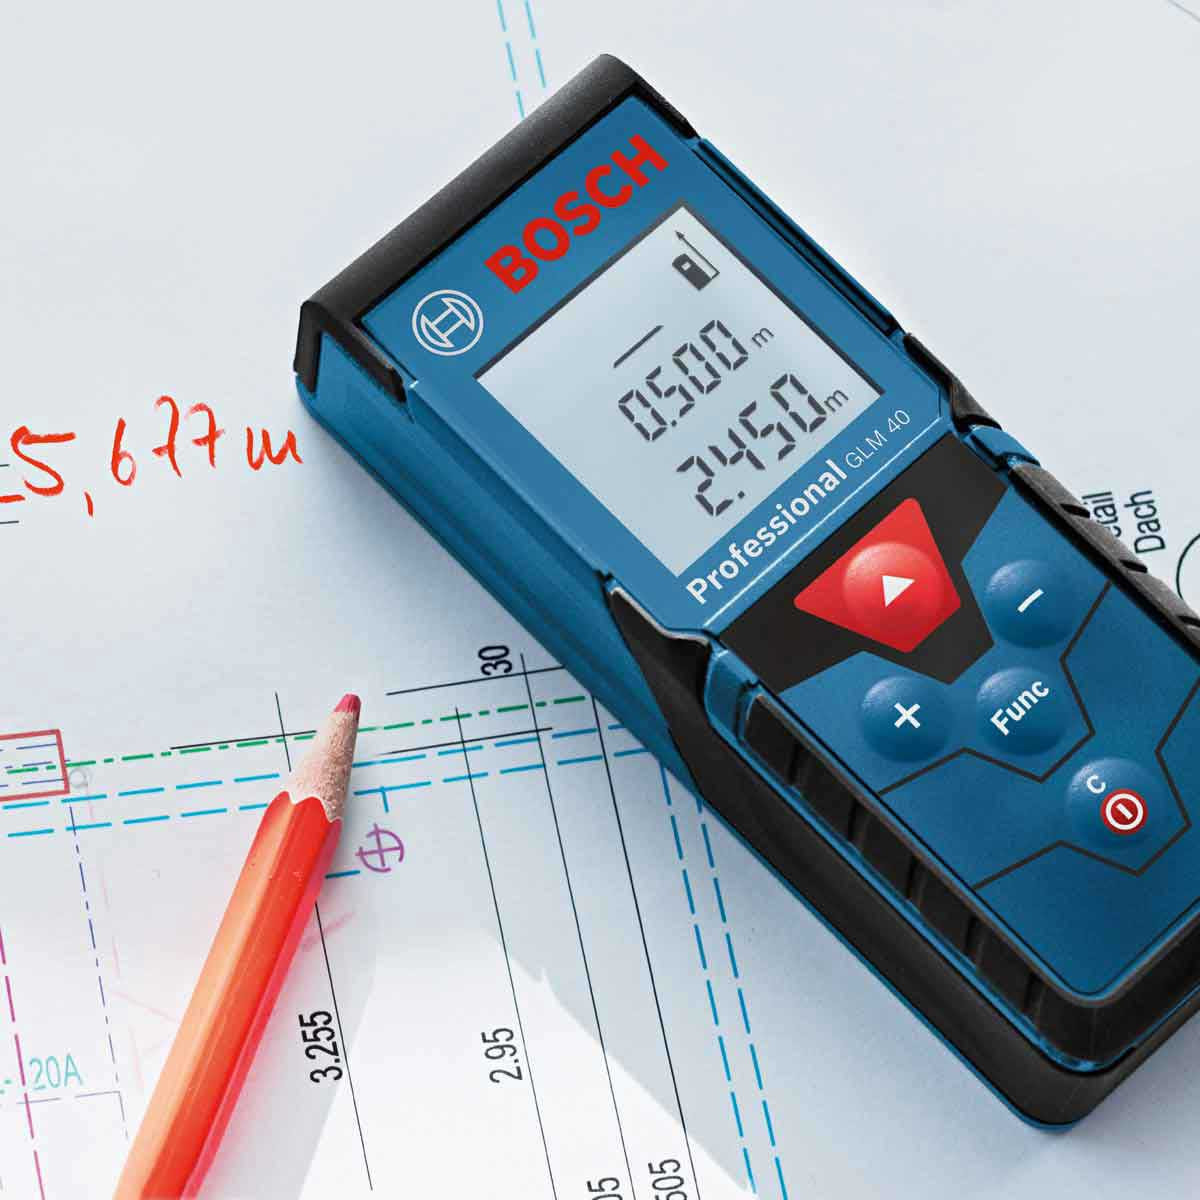 GLM40 Bosch 140 ft. Compact Laser Measure